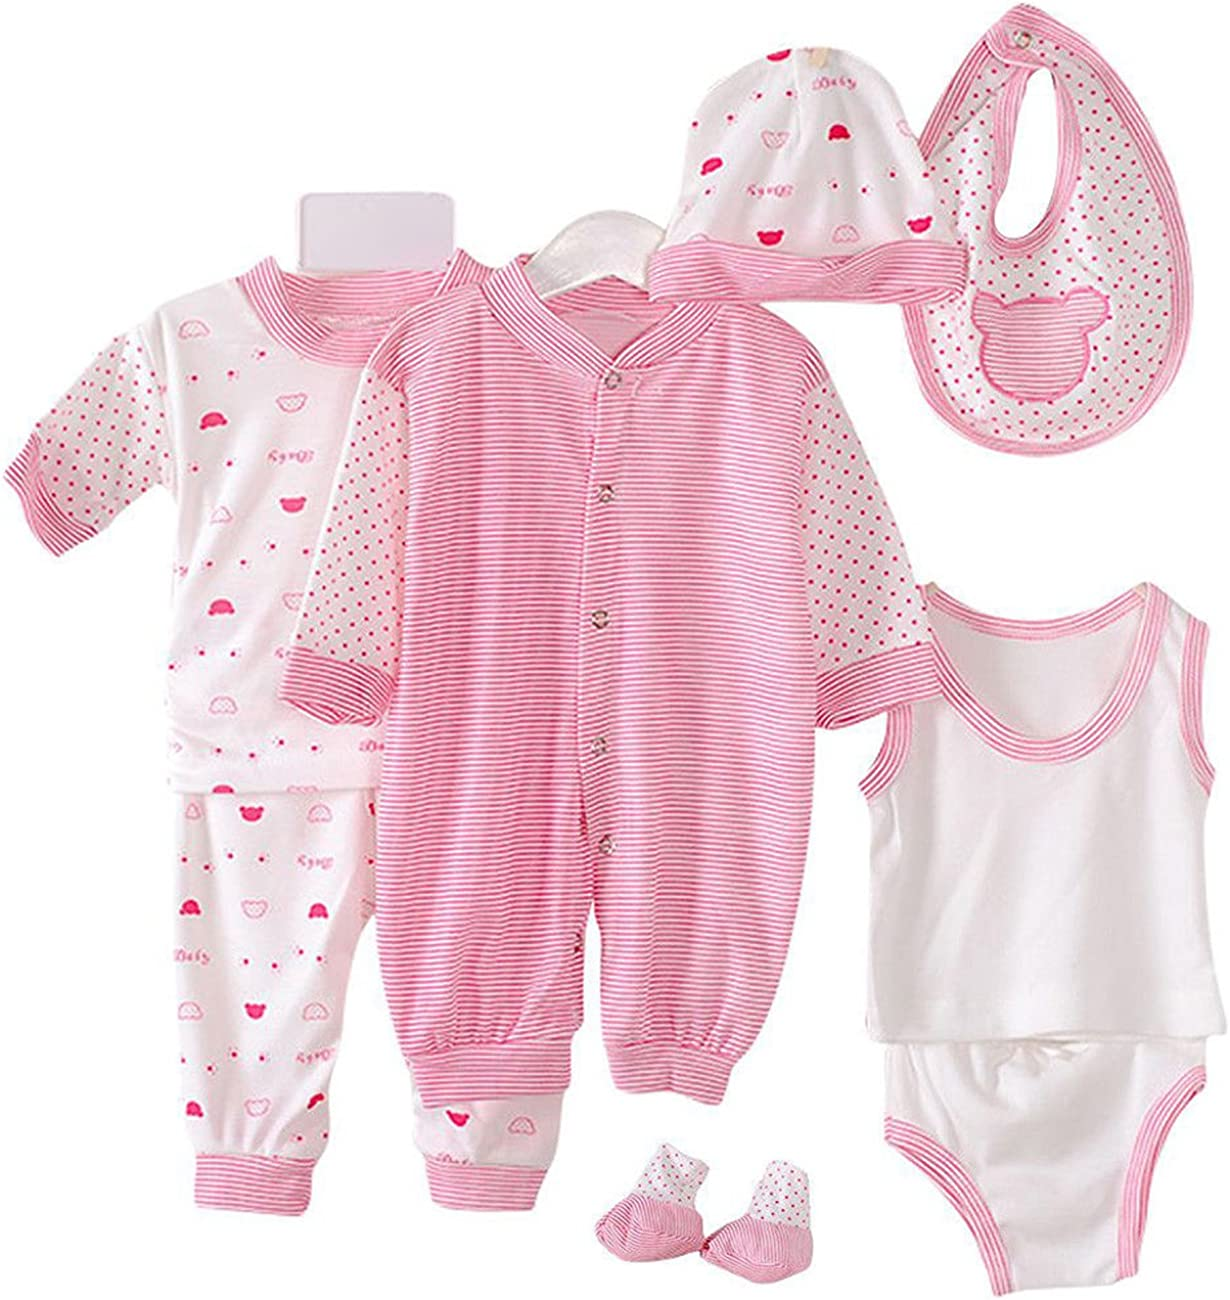 8PCS Cotton Newborn Baby Baltimore Mall Layette Set Spring new work Clothing J Includes Clothes